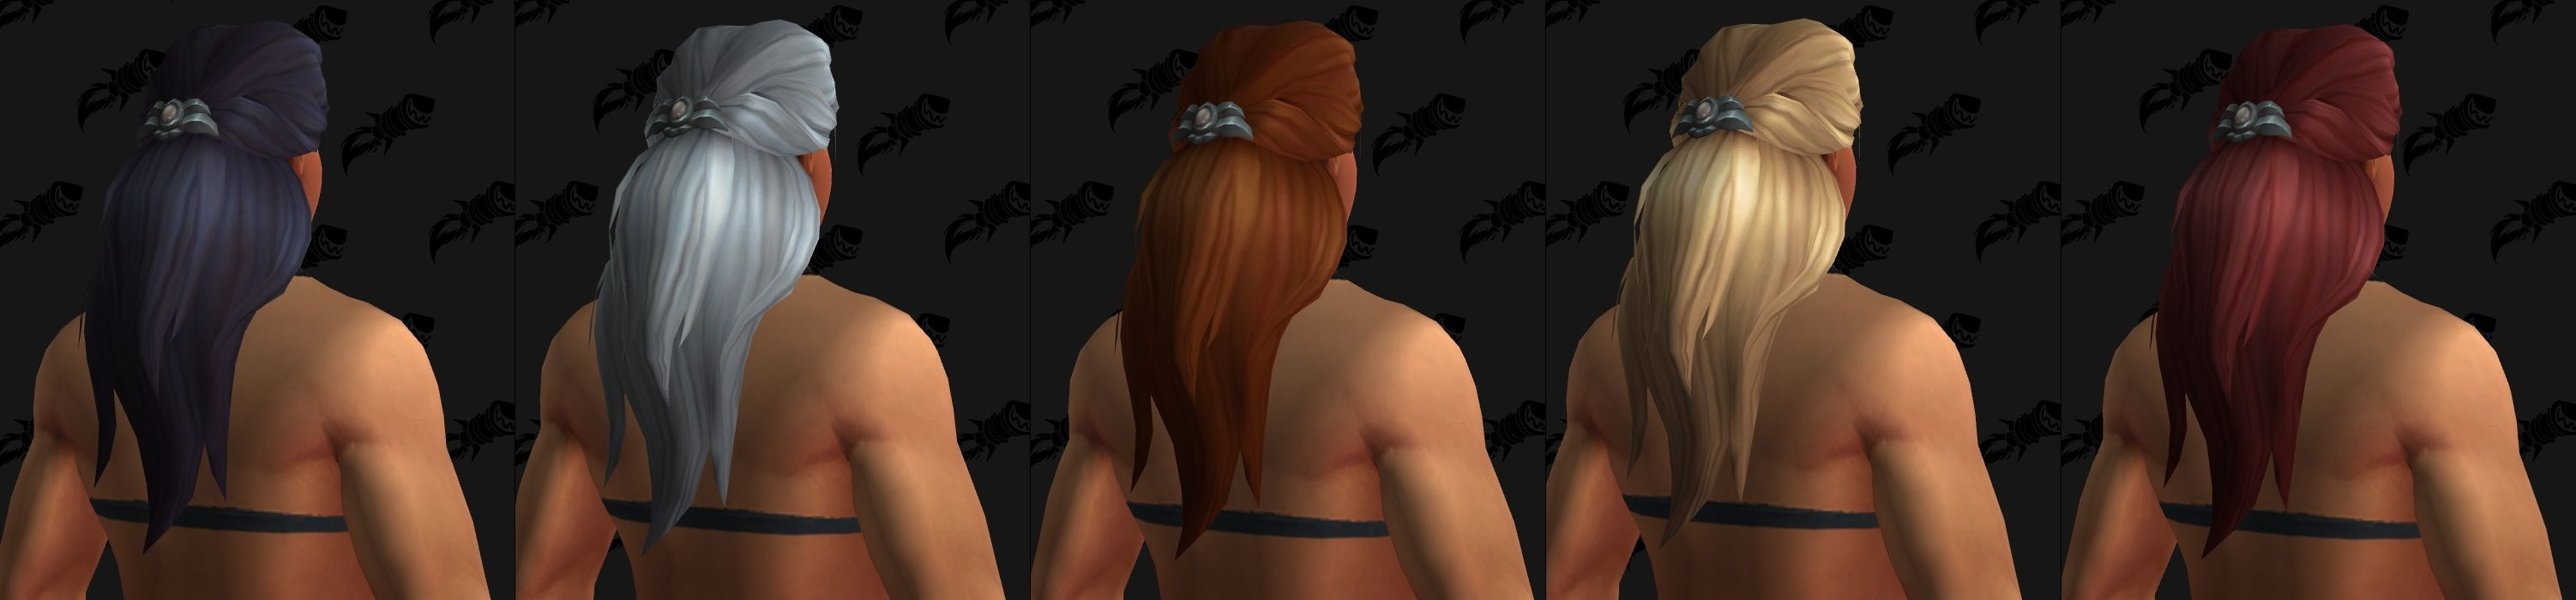 WoW Kul Tiras Female Haarfarben